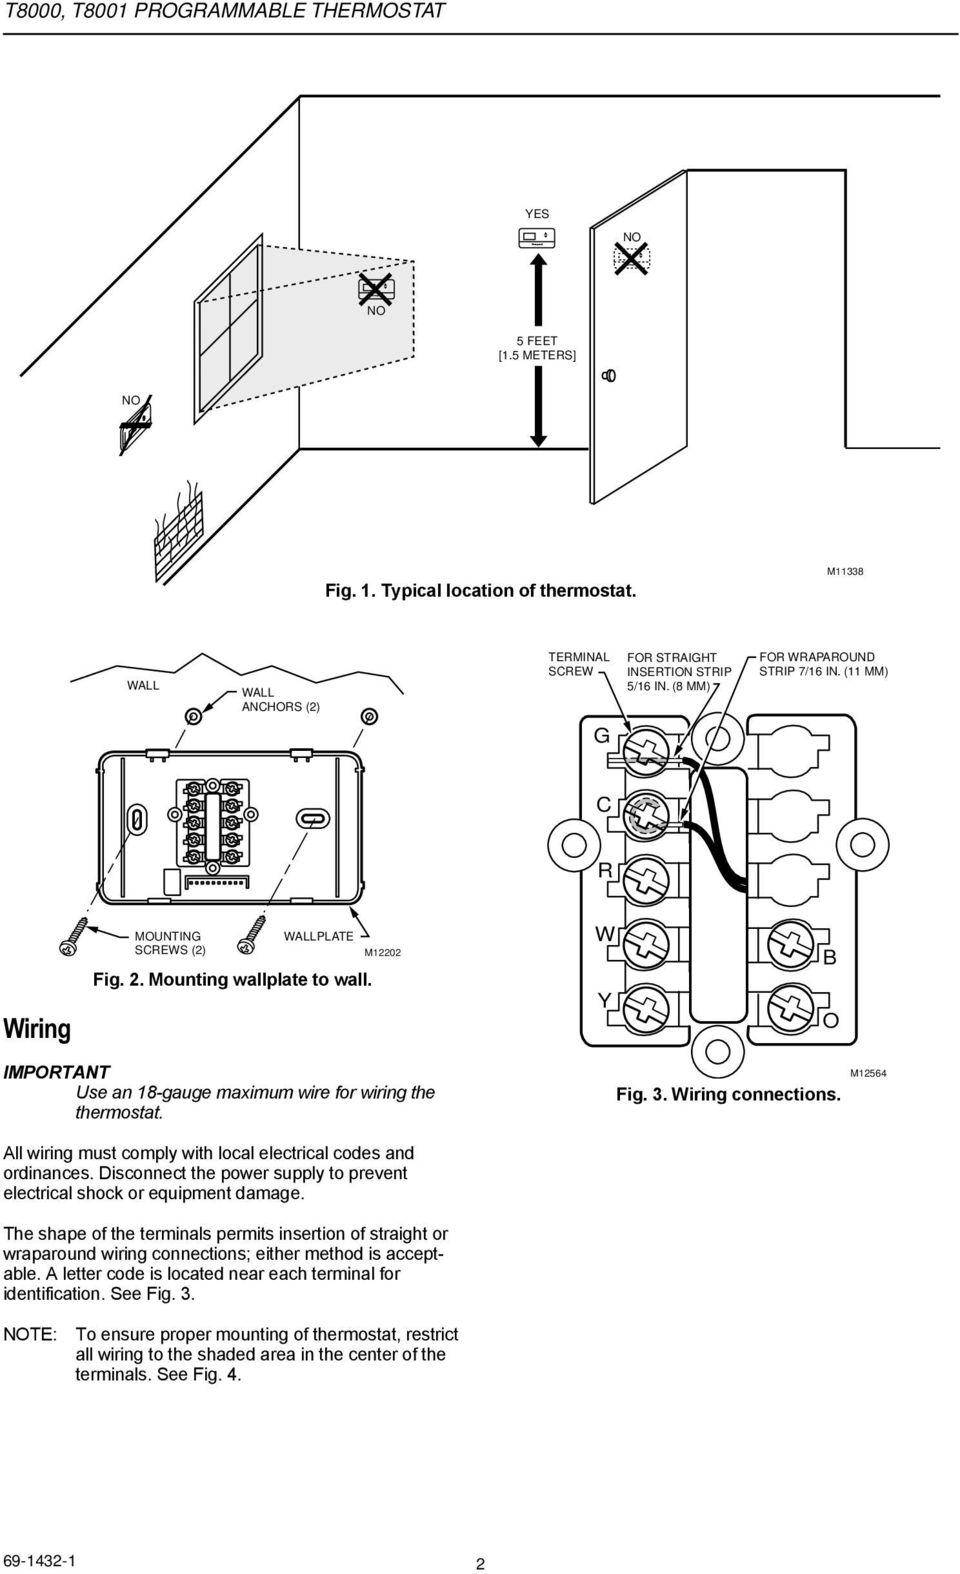 Honeywell T8001c Thermostat Wiring Diagram Thermostats Th8110u1003 On T8000 T8001 Programmable Pdf